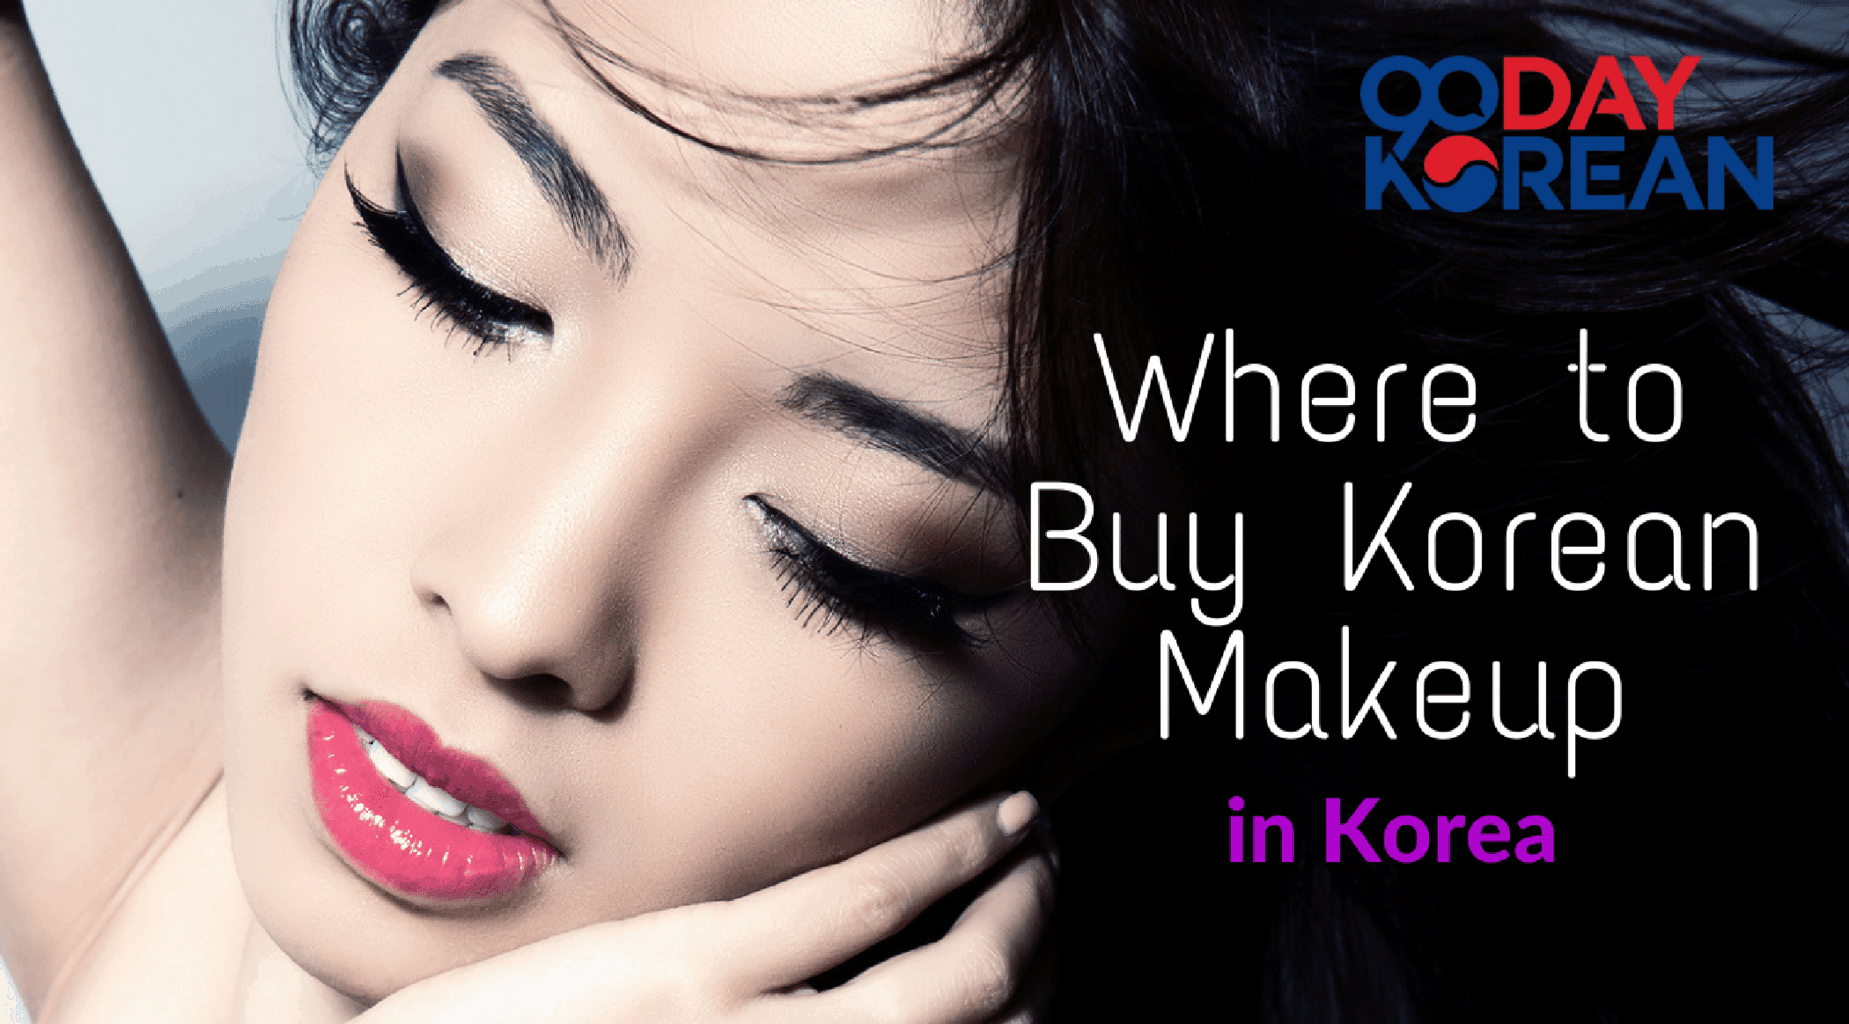 Where to Buy Korean Makeup in Korea